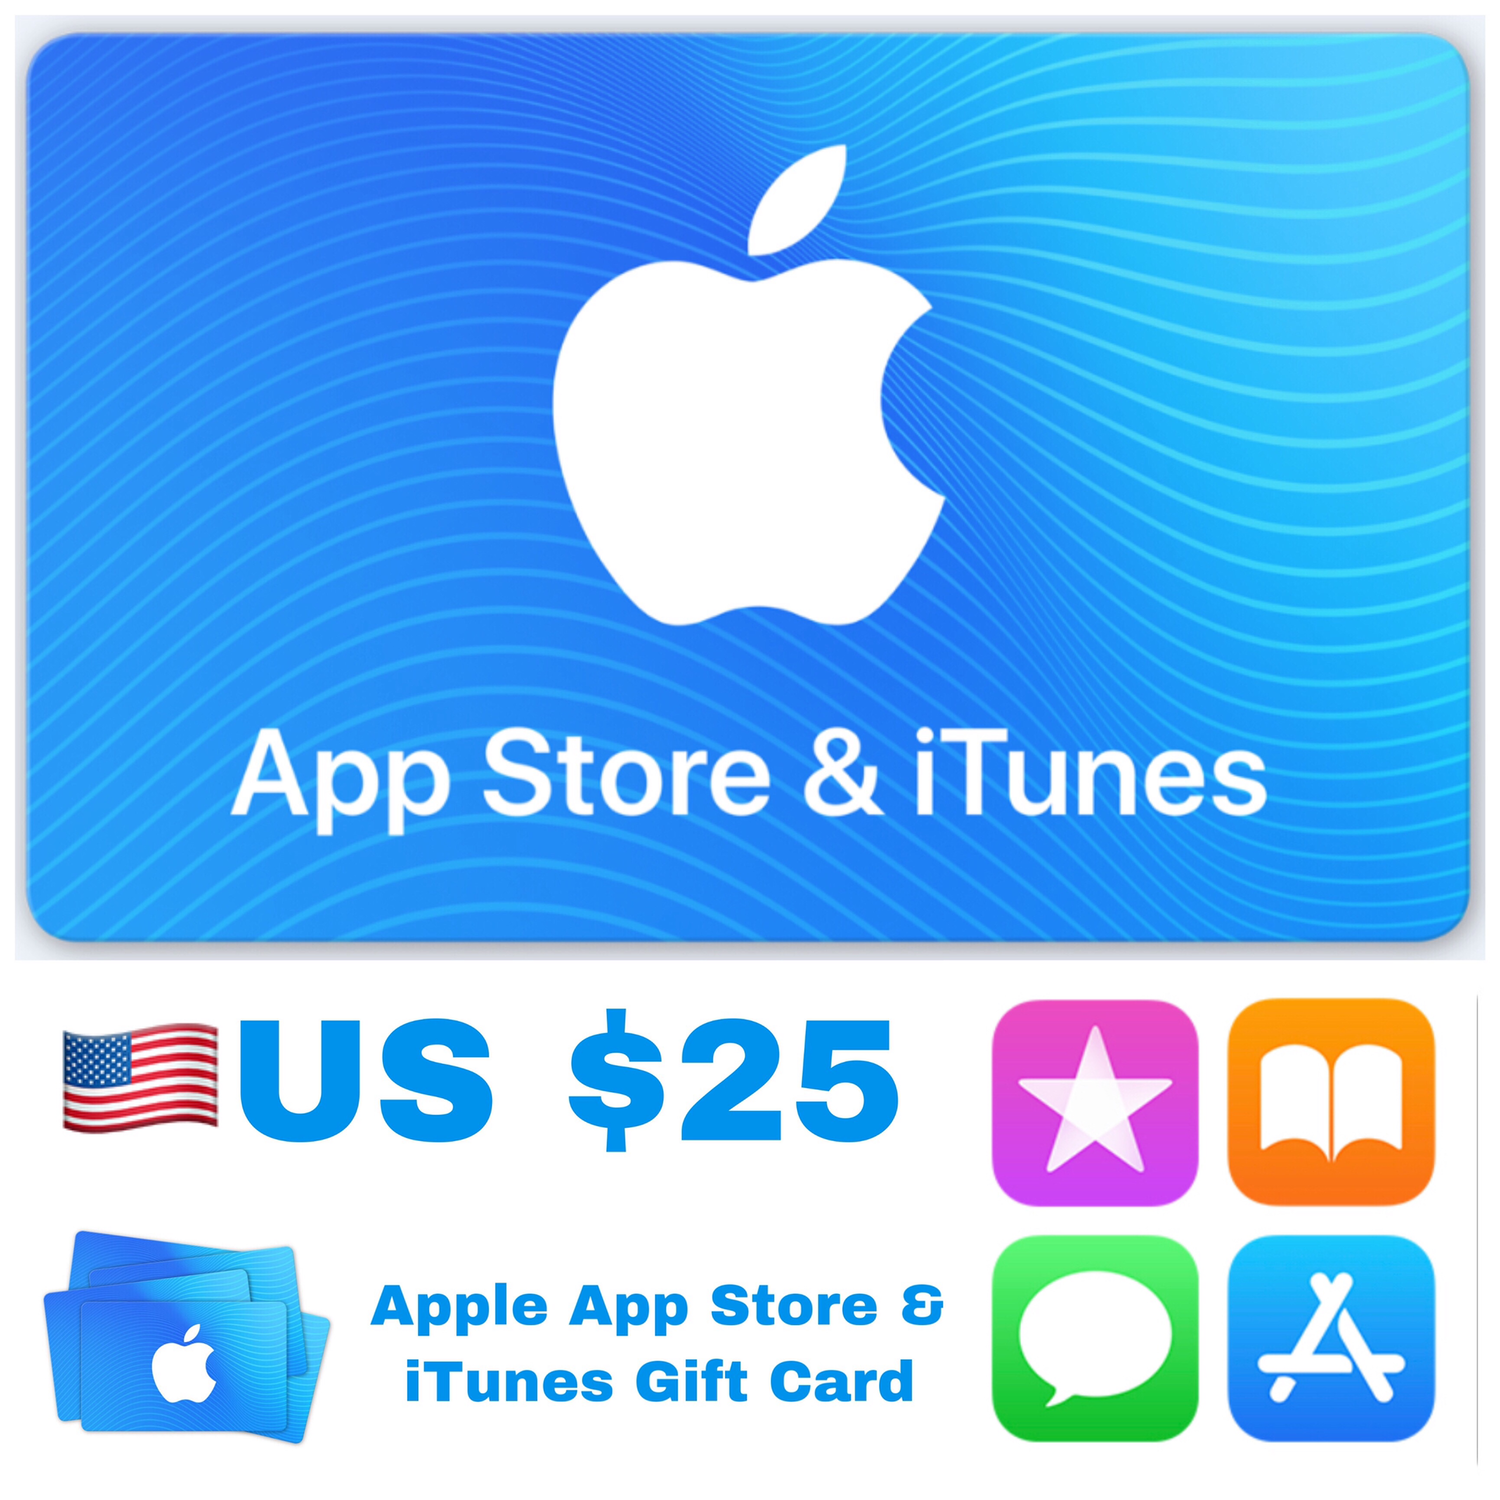 Apple App Store & iTunes Gift Cards US $25